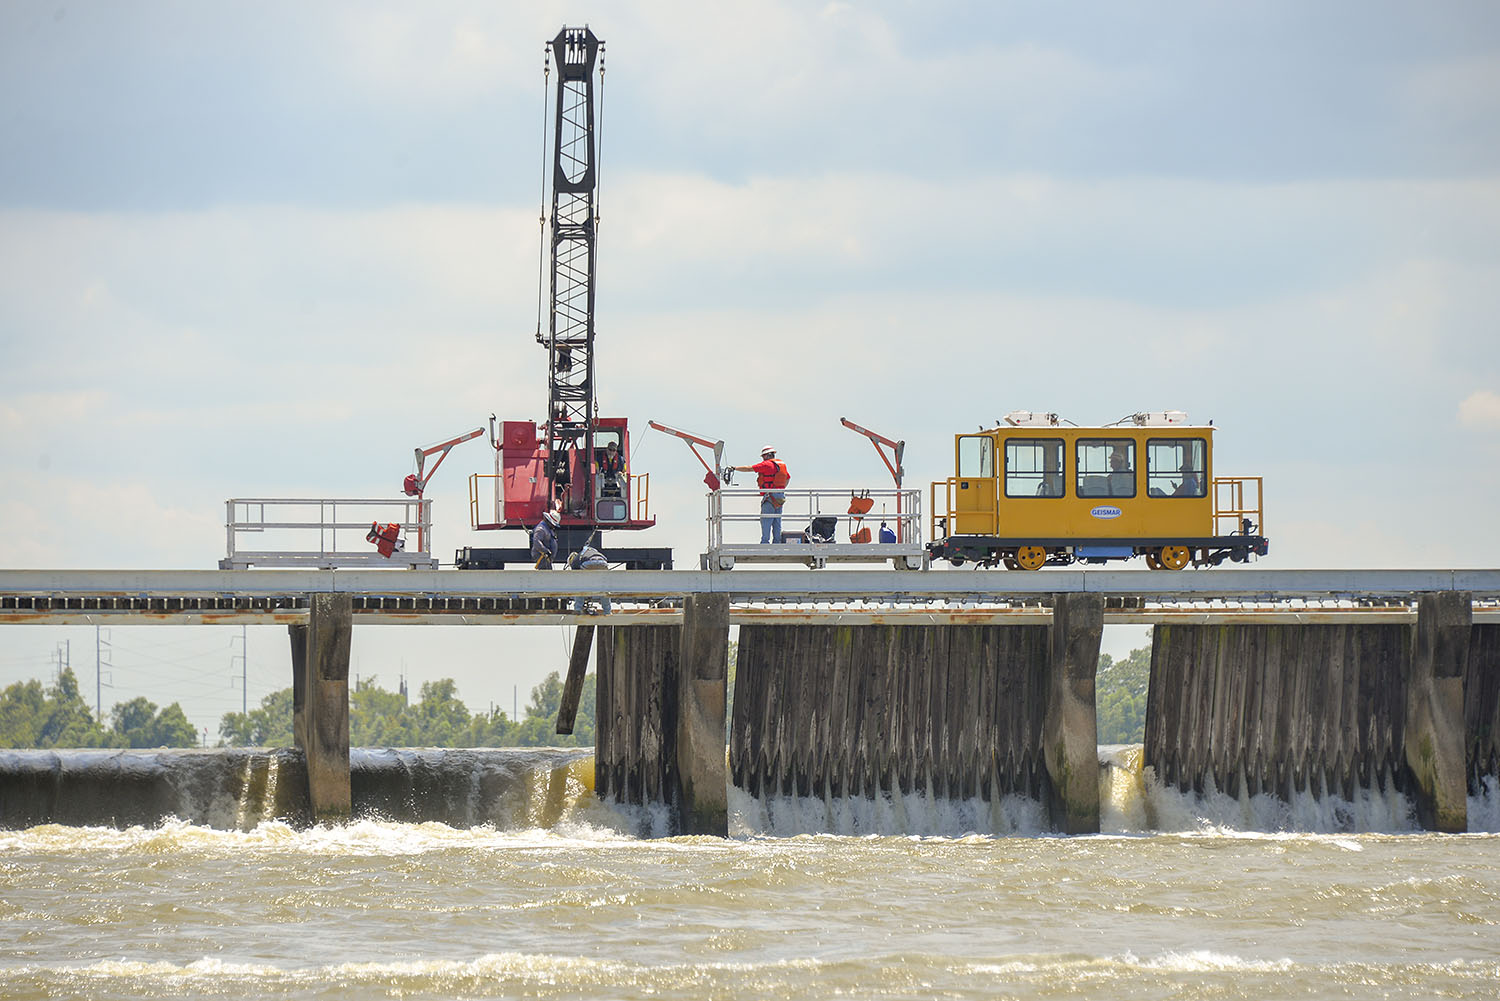 A Corps of Engineers crew works to close bays in the Bonnet Carré Spillway July 25. (Photo courtesy of New Orleans Engineer District)